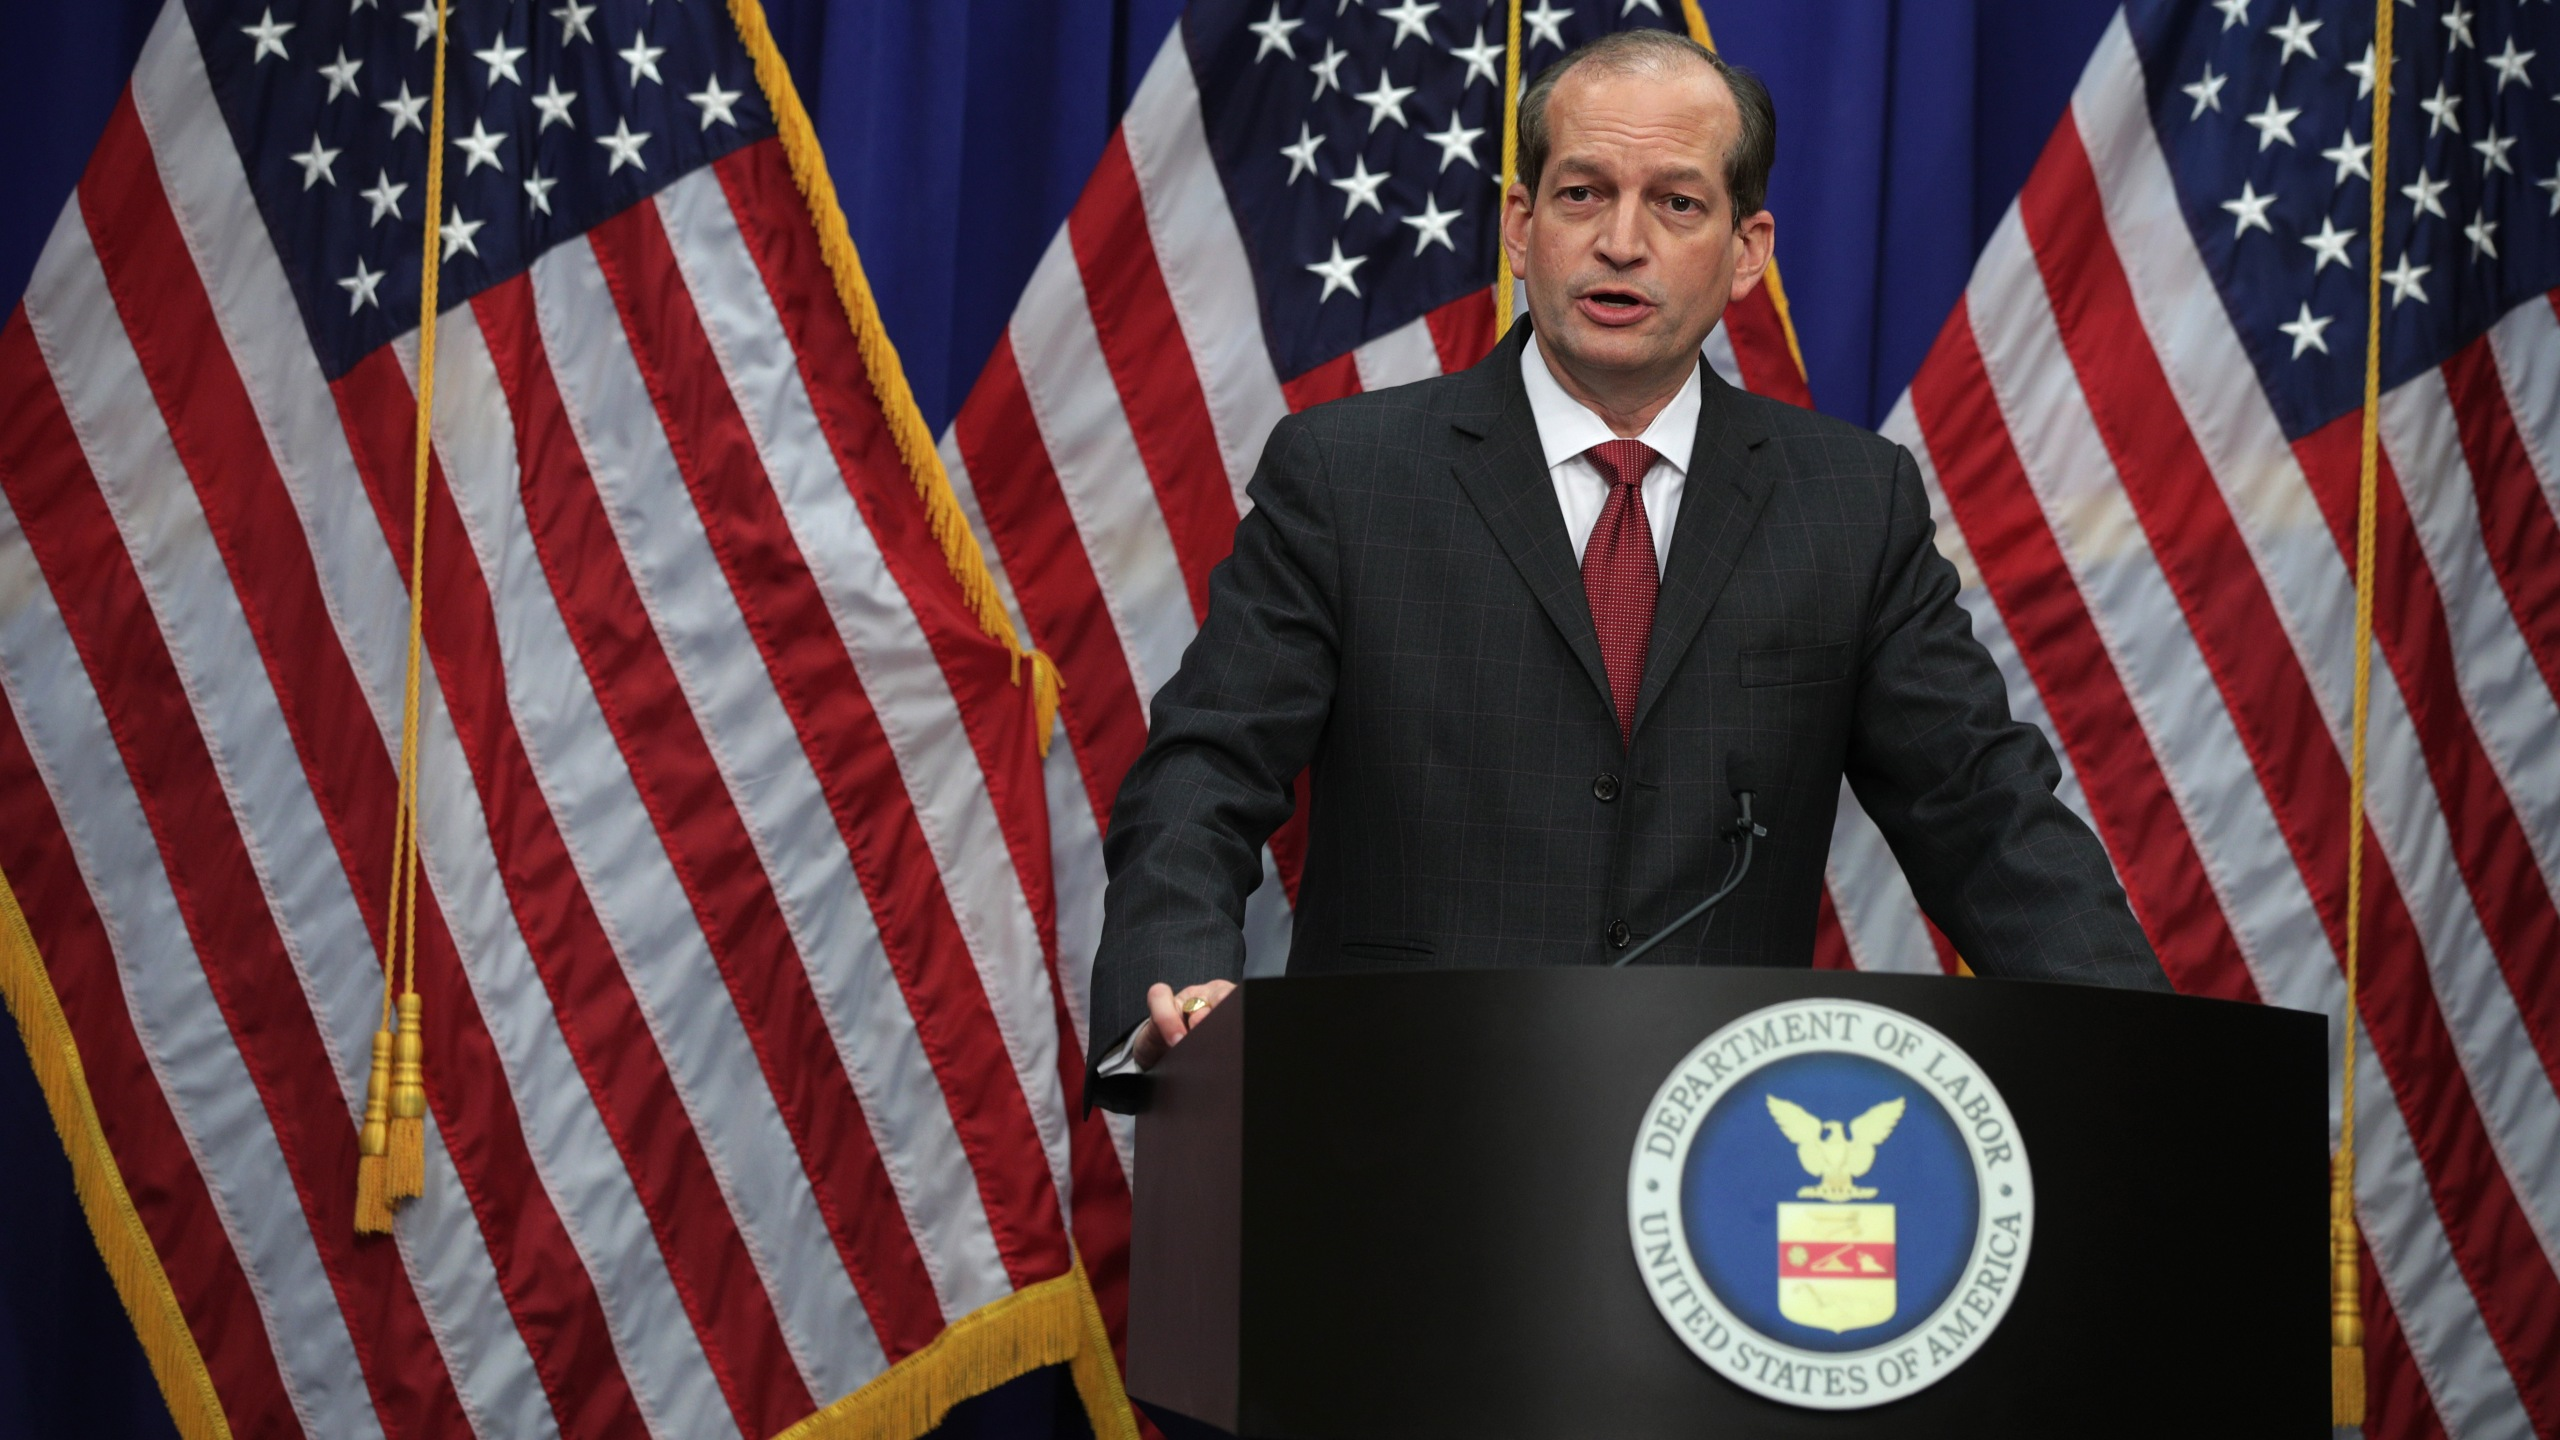 Secretary of Labor Alex Acosta speaks during a press conference at the Labor Department in Washington, D.C. on July 10, 2019. (Credit: Alex Wong/Getty Images)